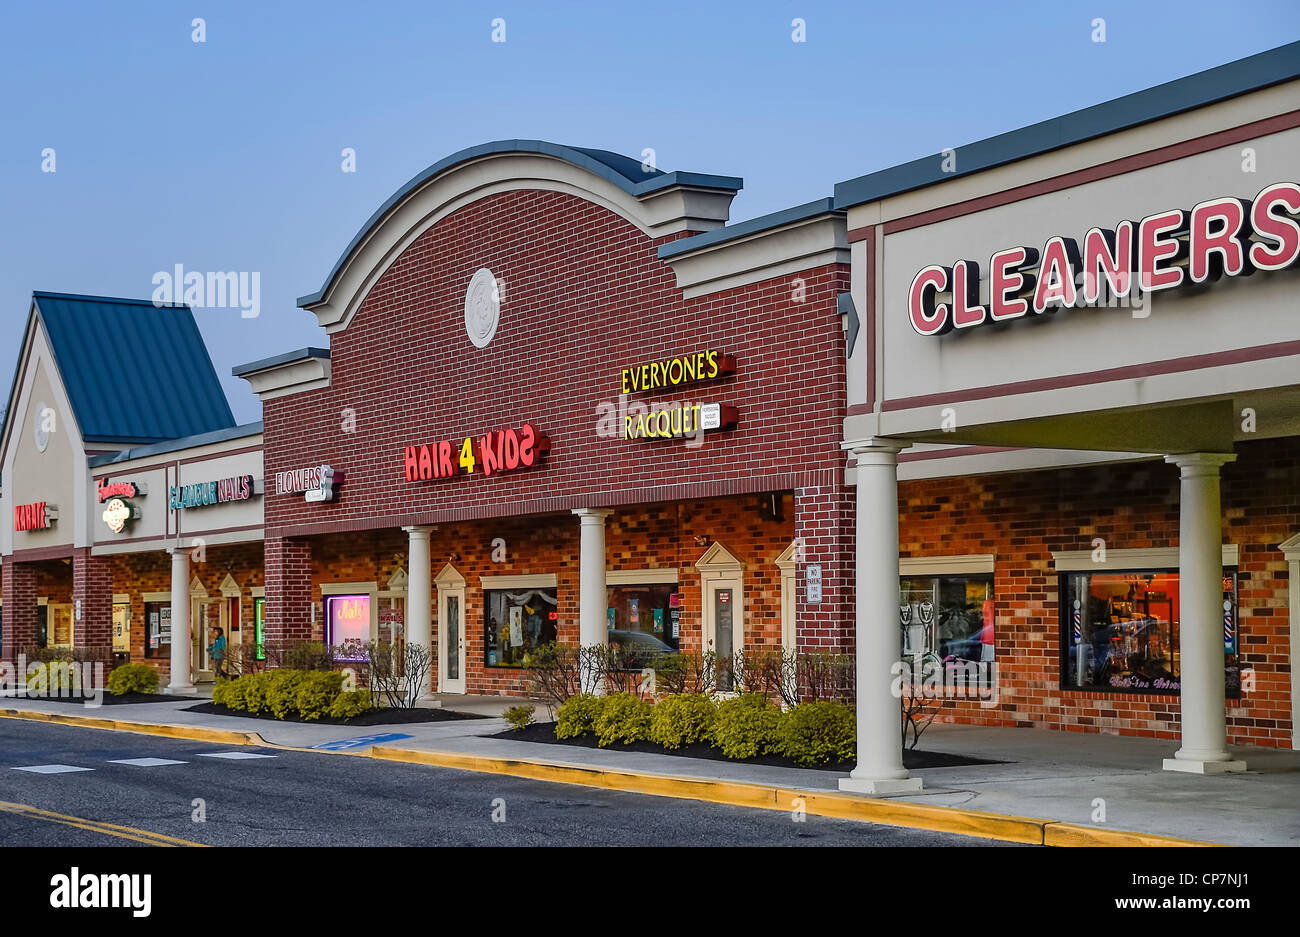 Typical American strip mall. - Stock Image